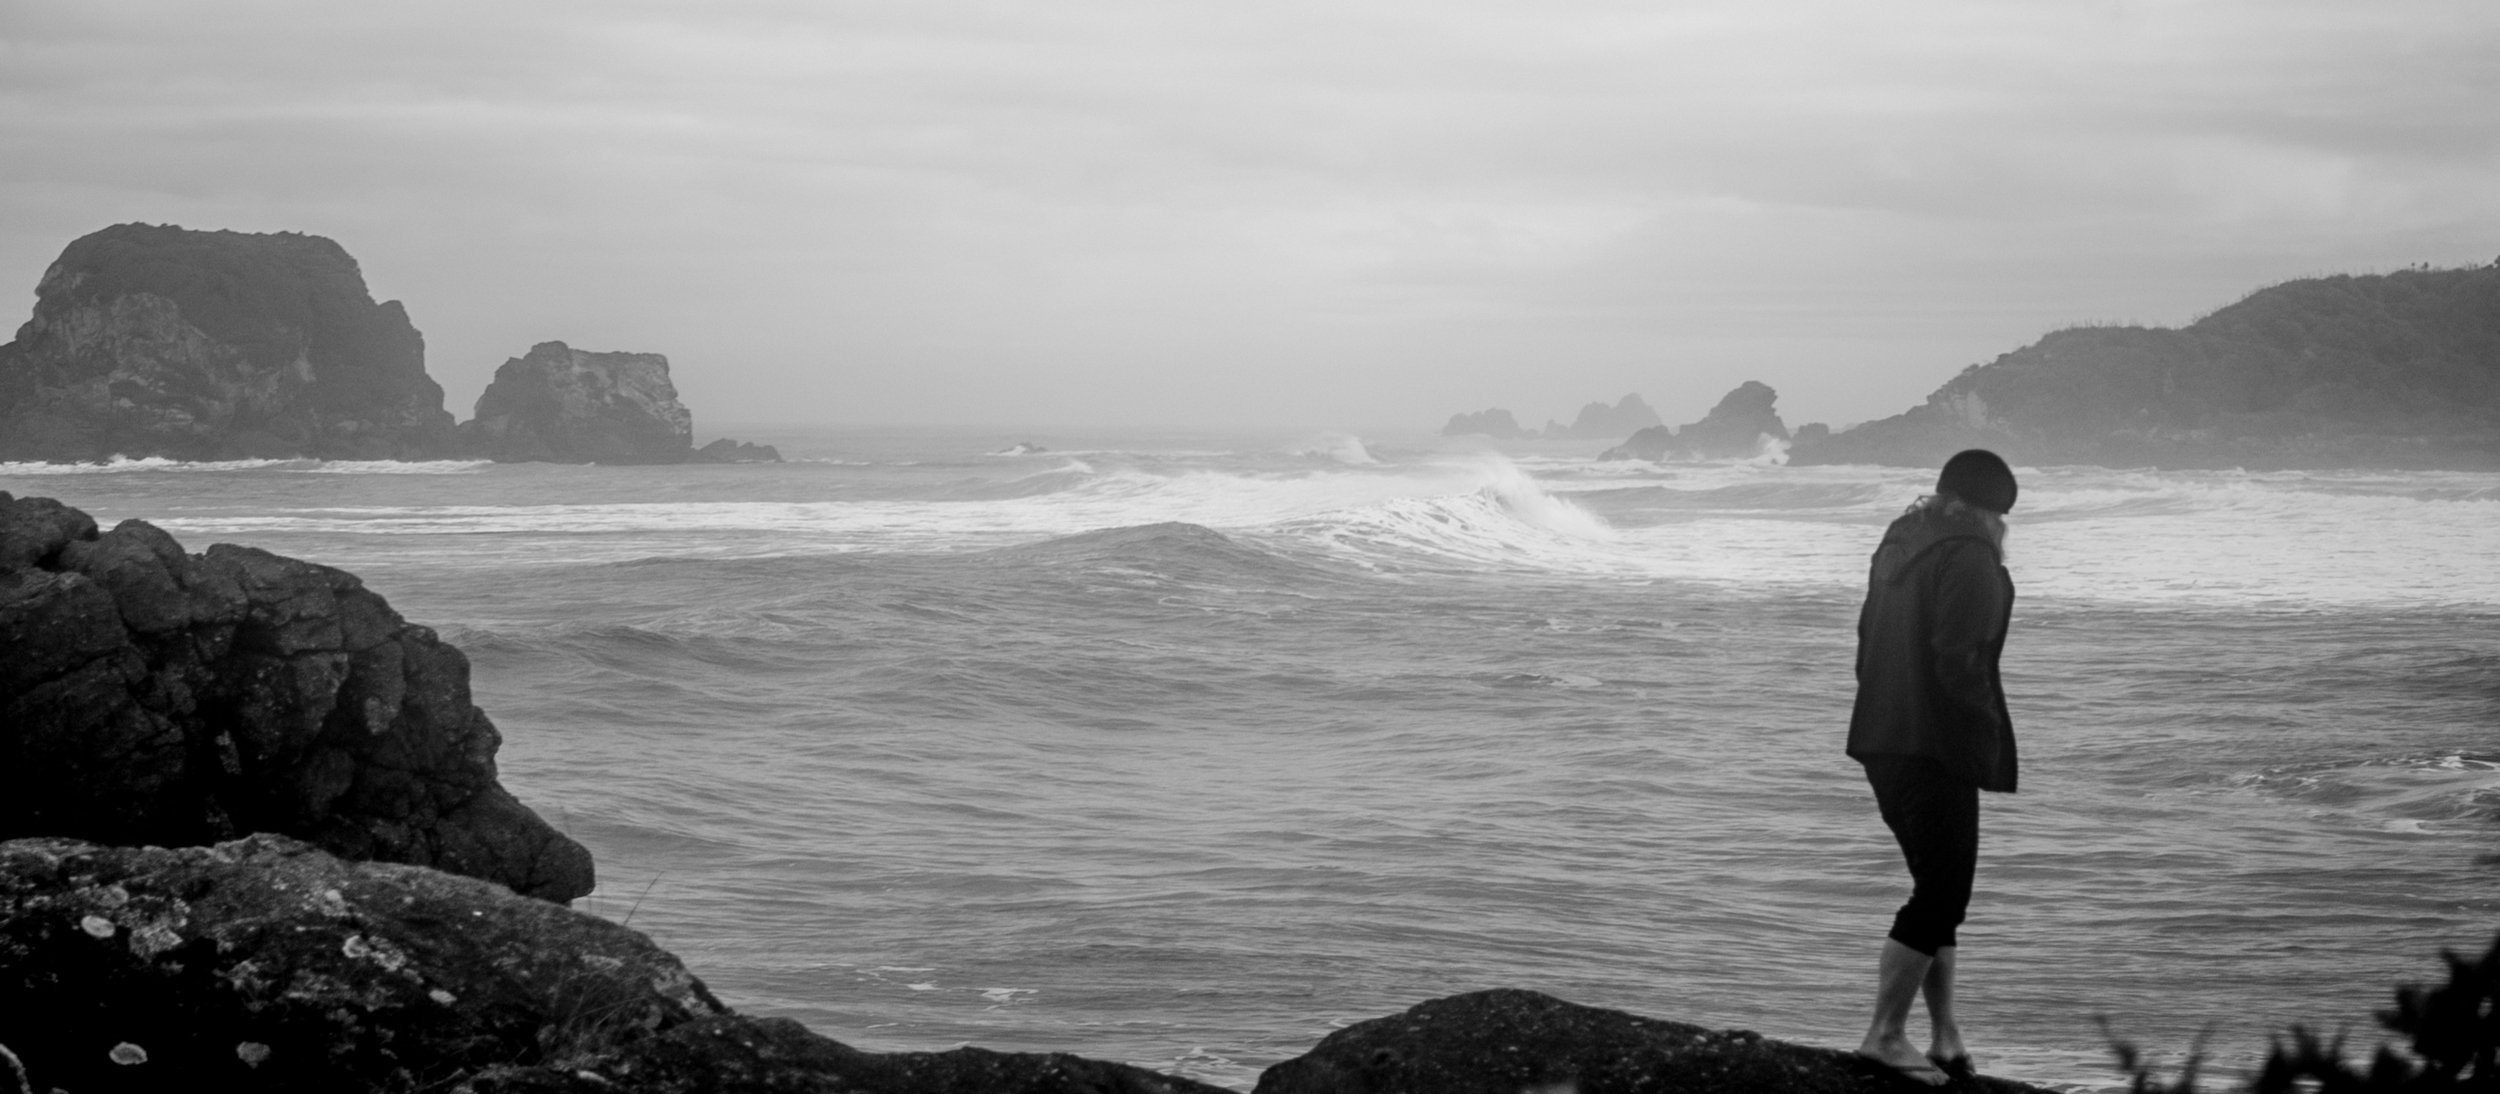 Surf, swell and spray at Tauranga Bay, Cape Foulwind in the distance.